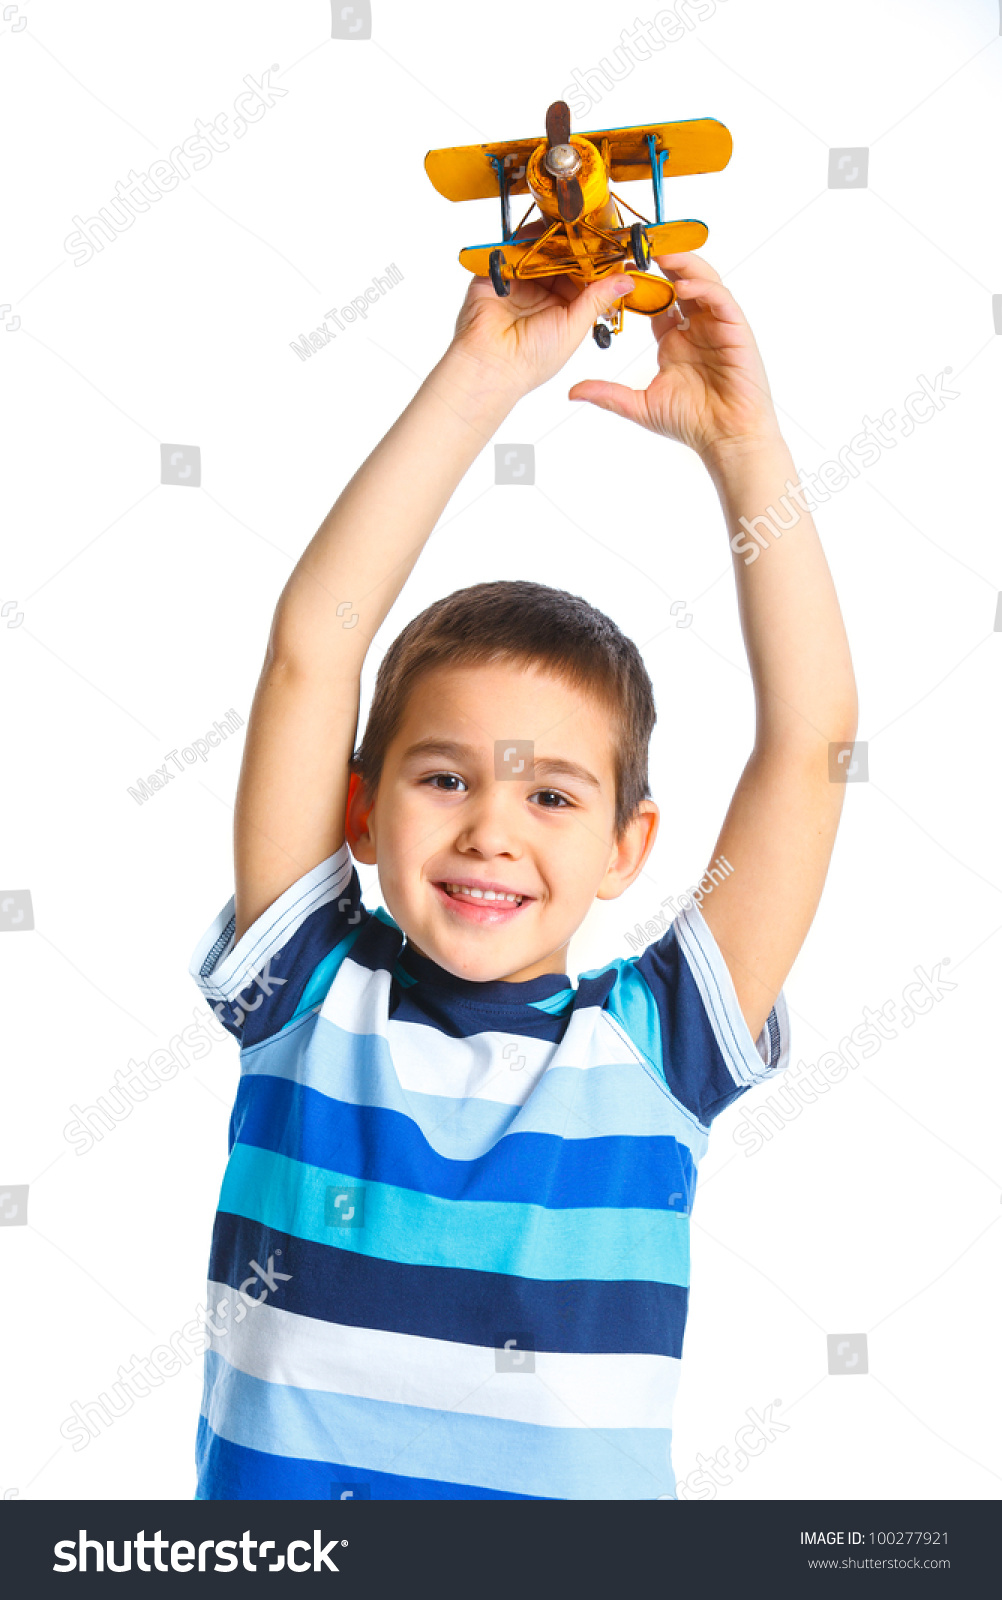 White Boys Toys : Cute little boy playing toy airplane stock photo